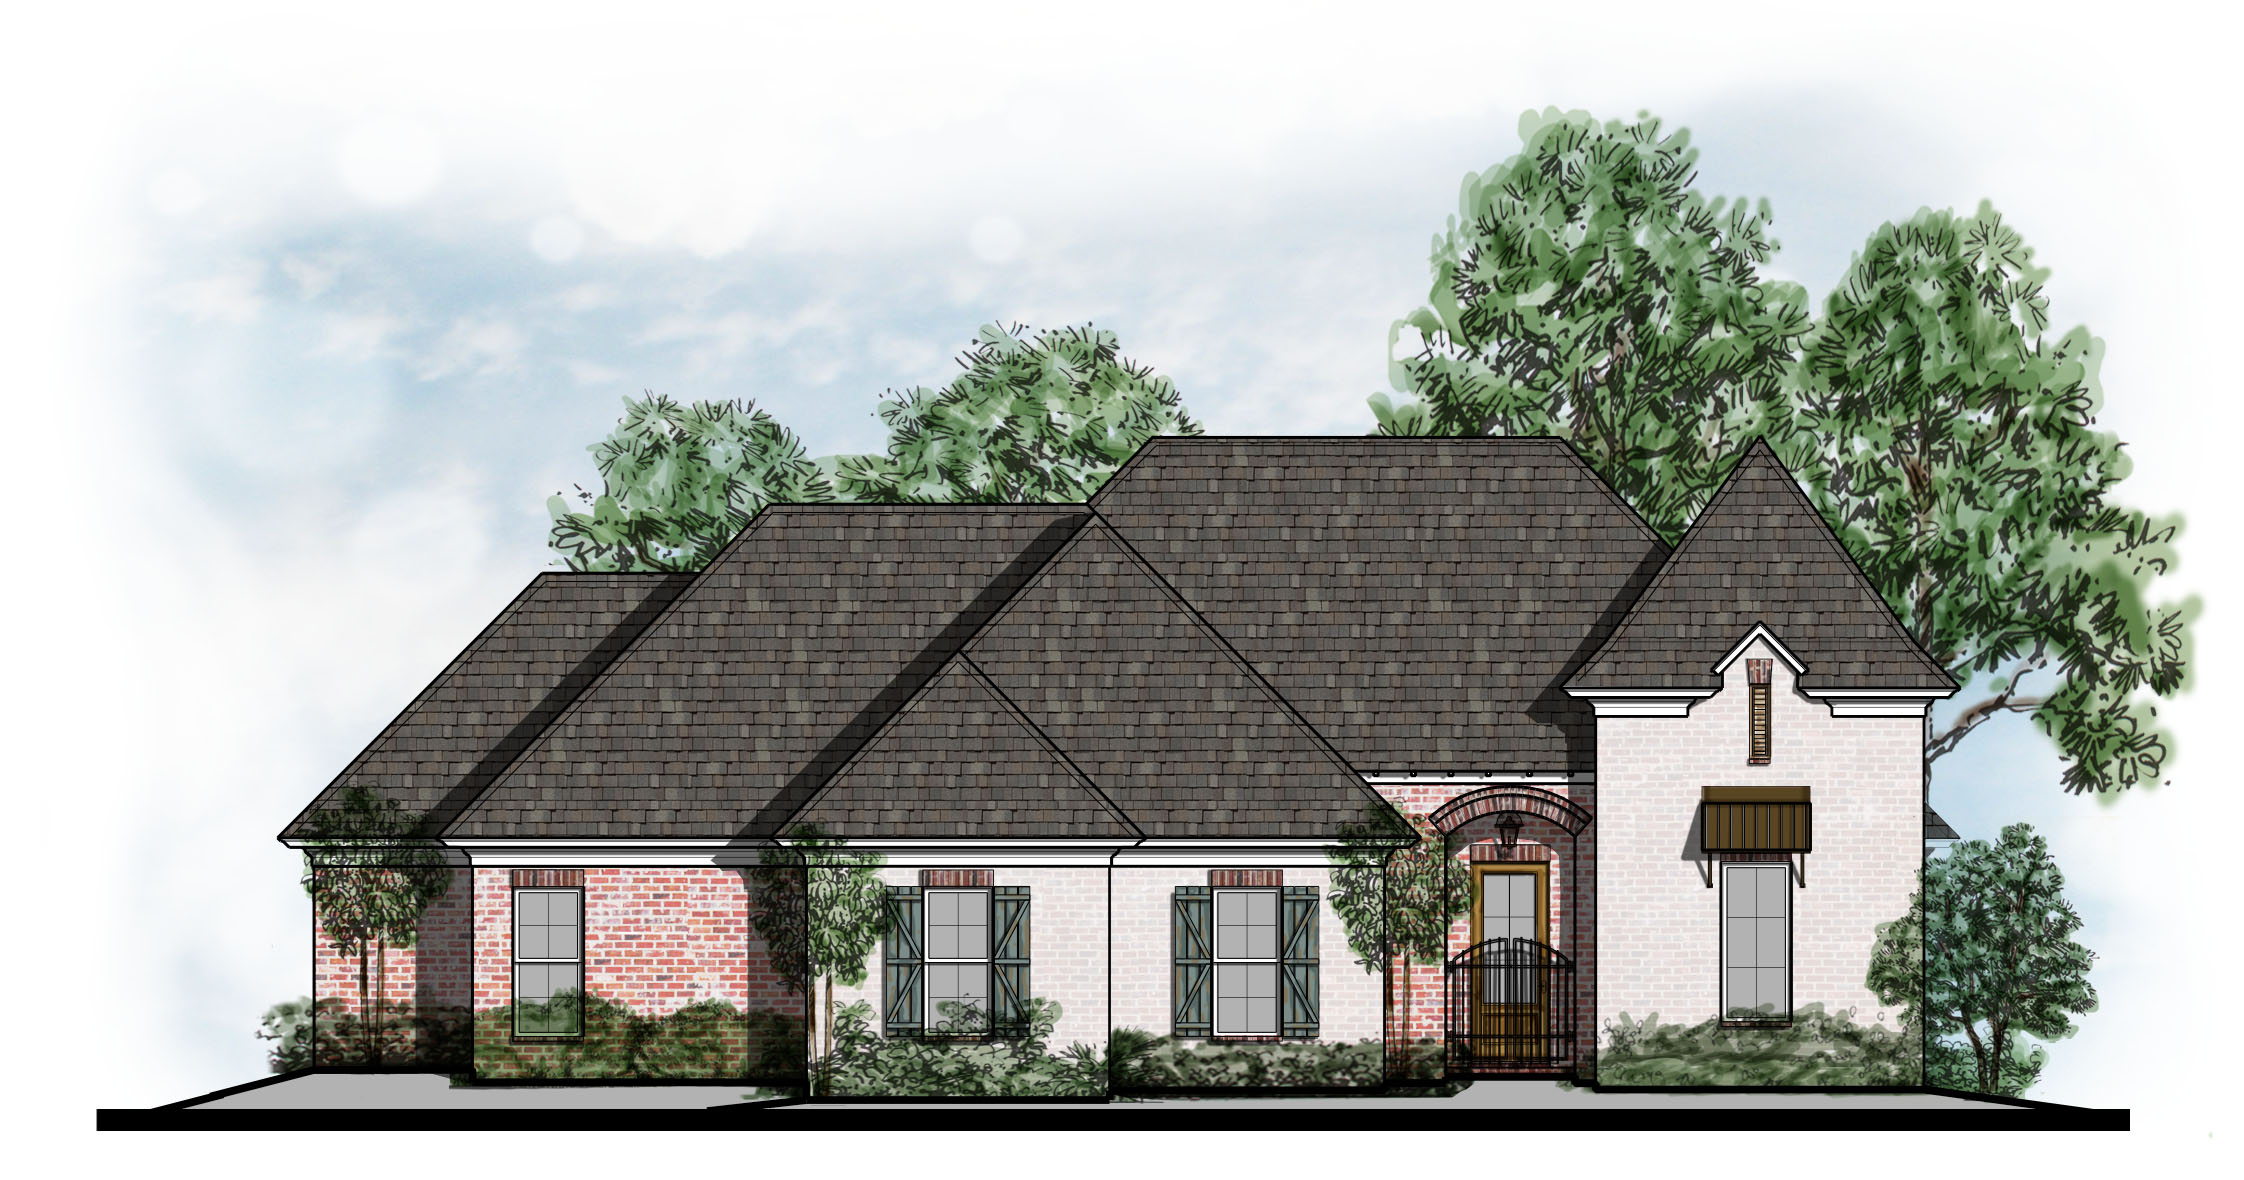 105-12A Front Elevation